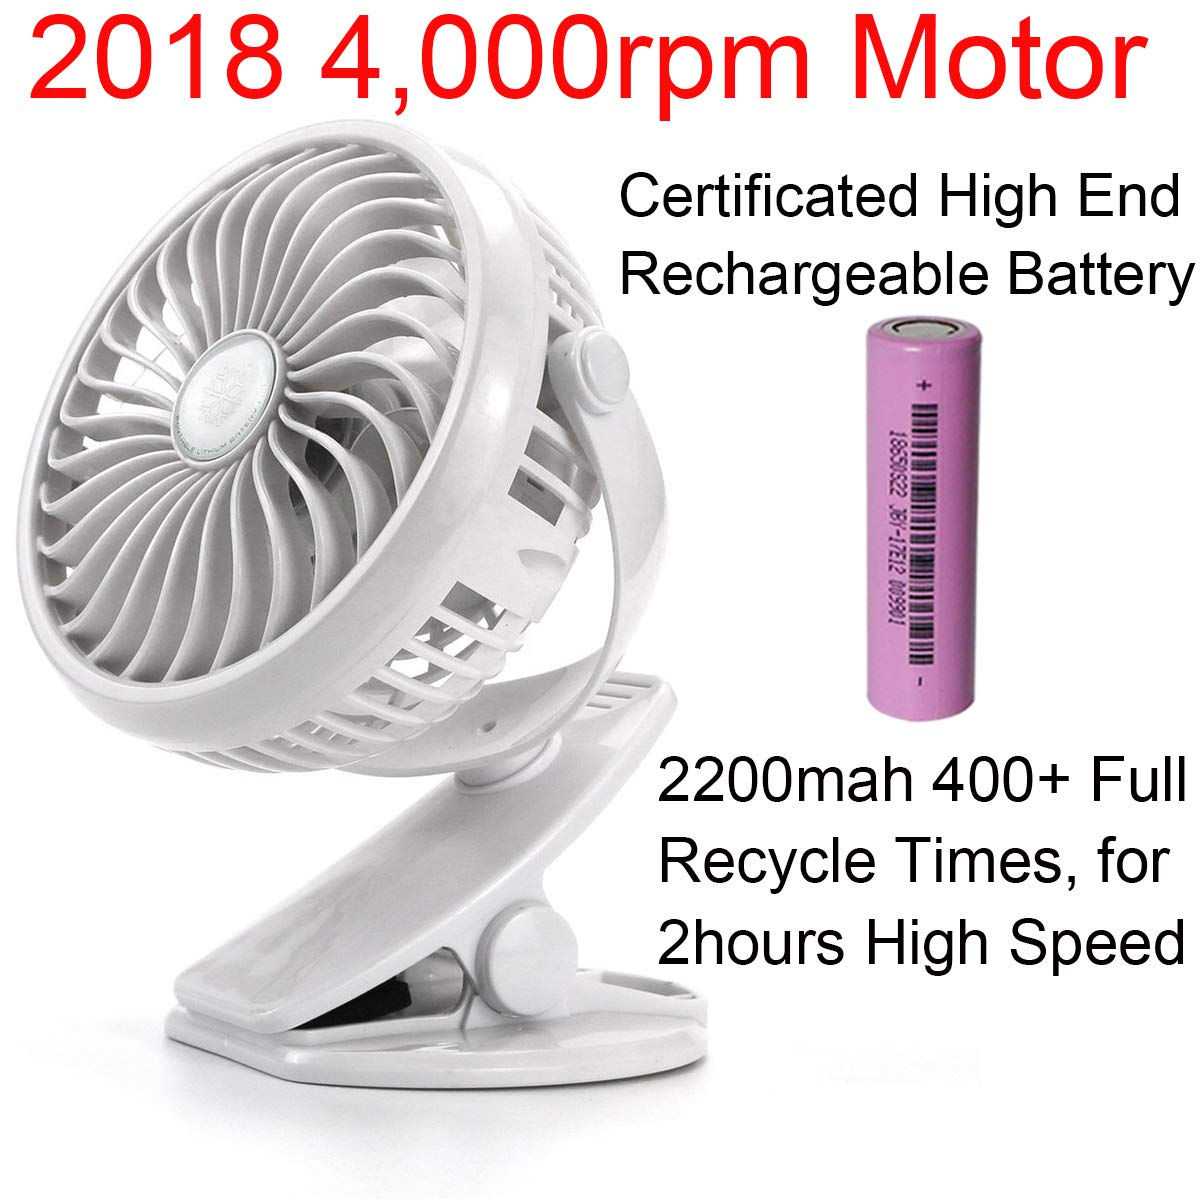 2018 Portable USB Chargeable Fan with Battery inside Wired and Wirless Running for Person, Kitchen, Office, Person, Travel, Outdoor